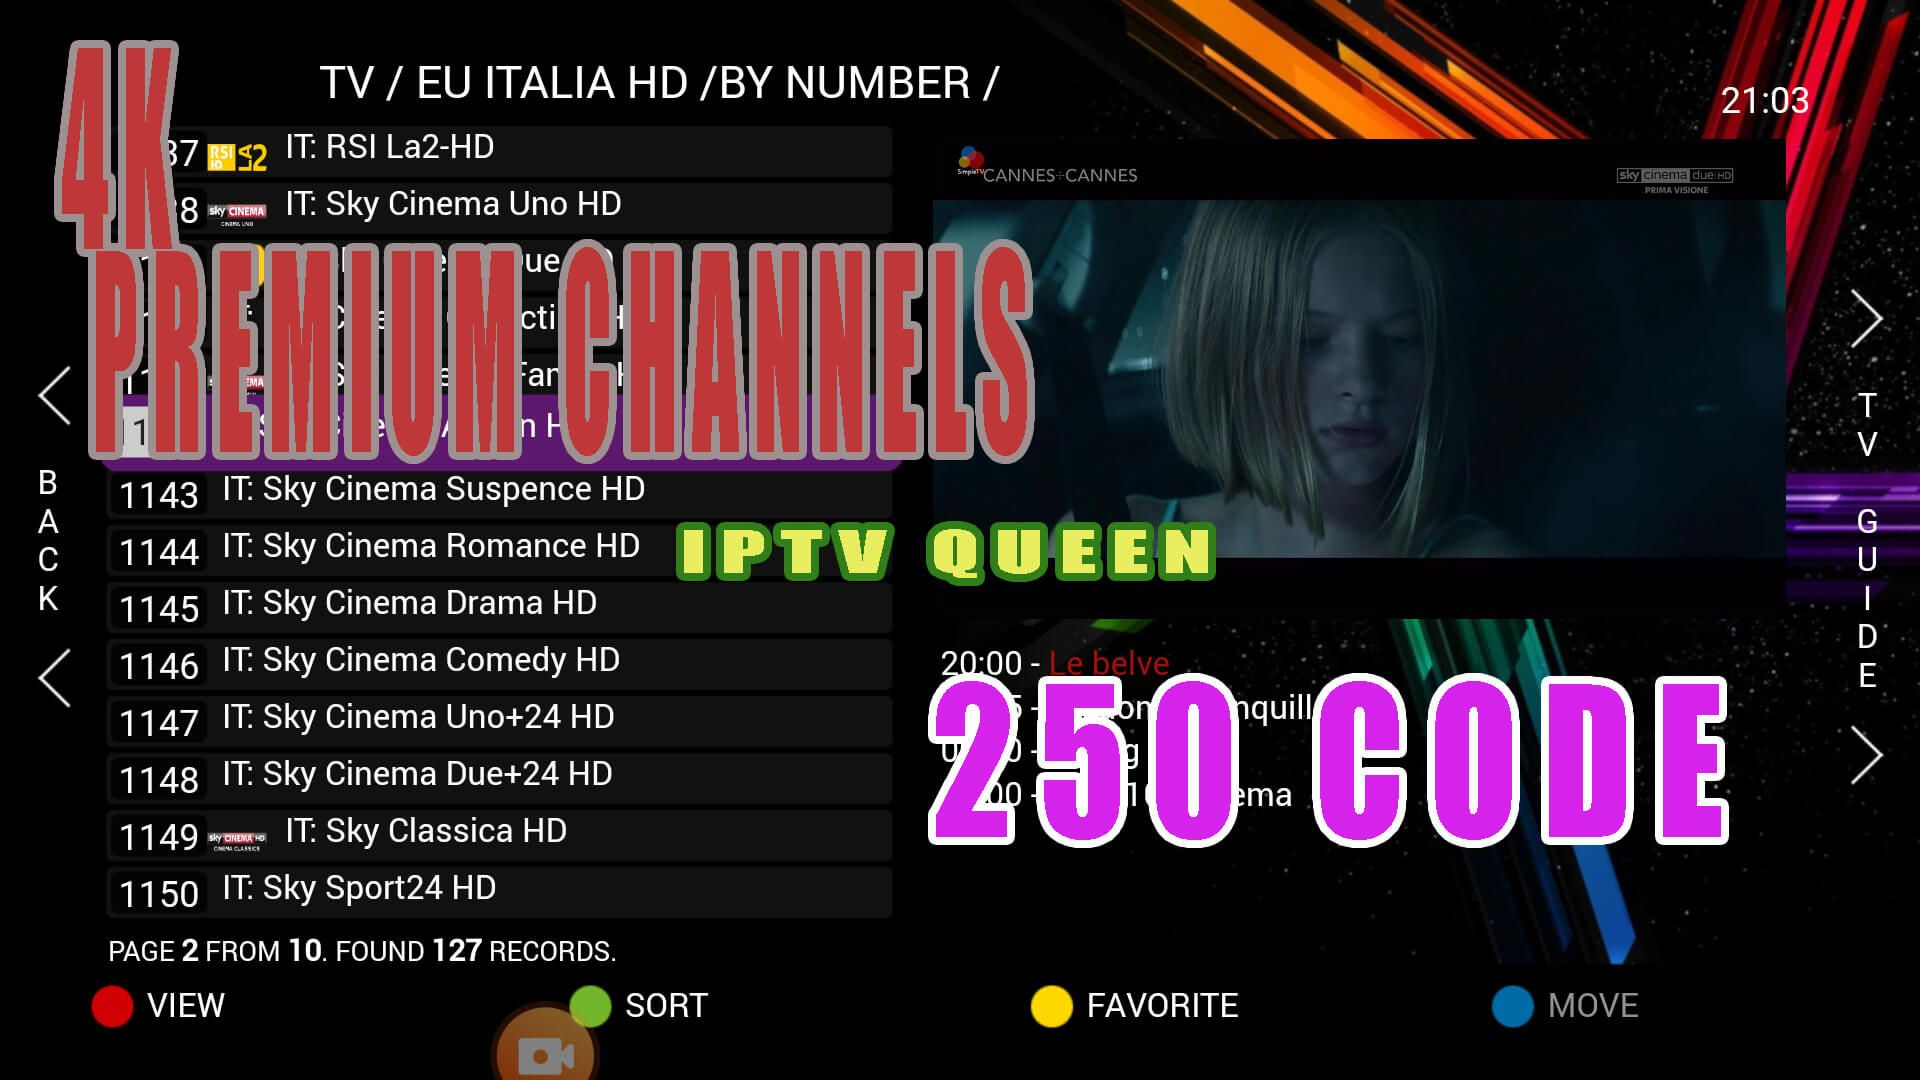 STB EMU PRO NEW 250 CODES ACTIVATION FULL HD CHANNELS NO